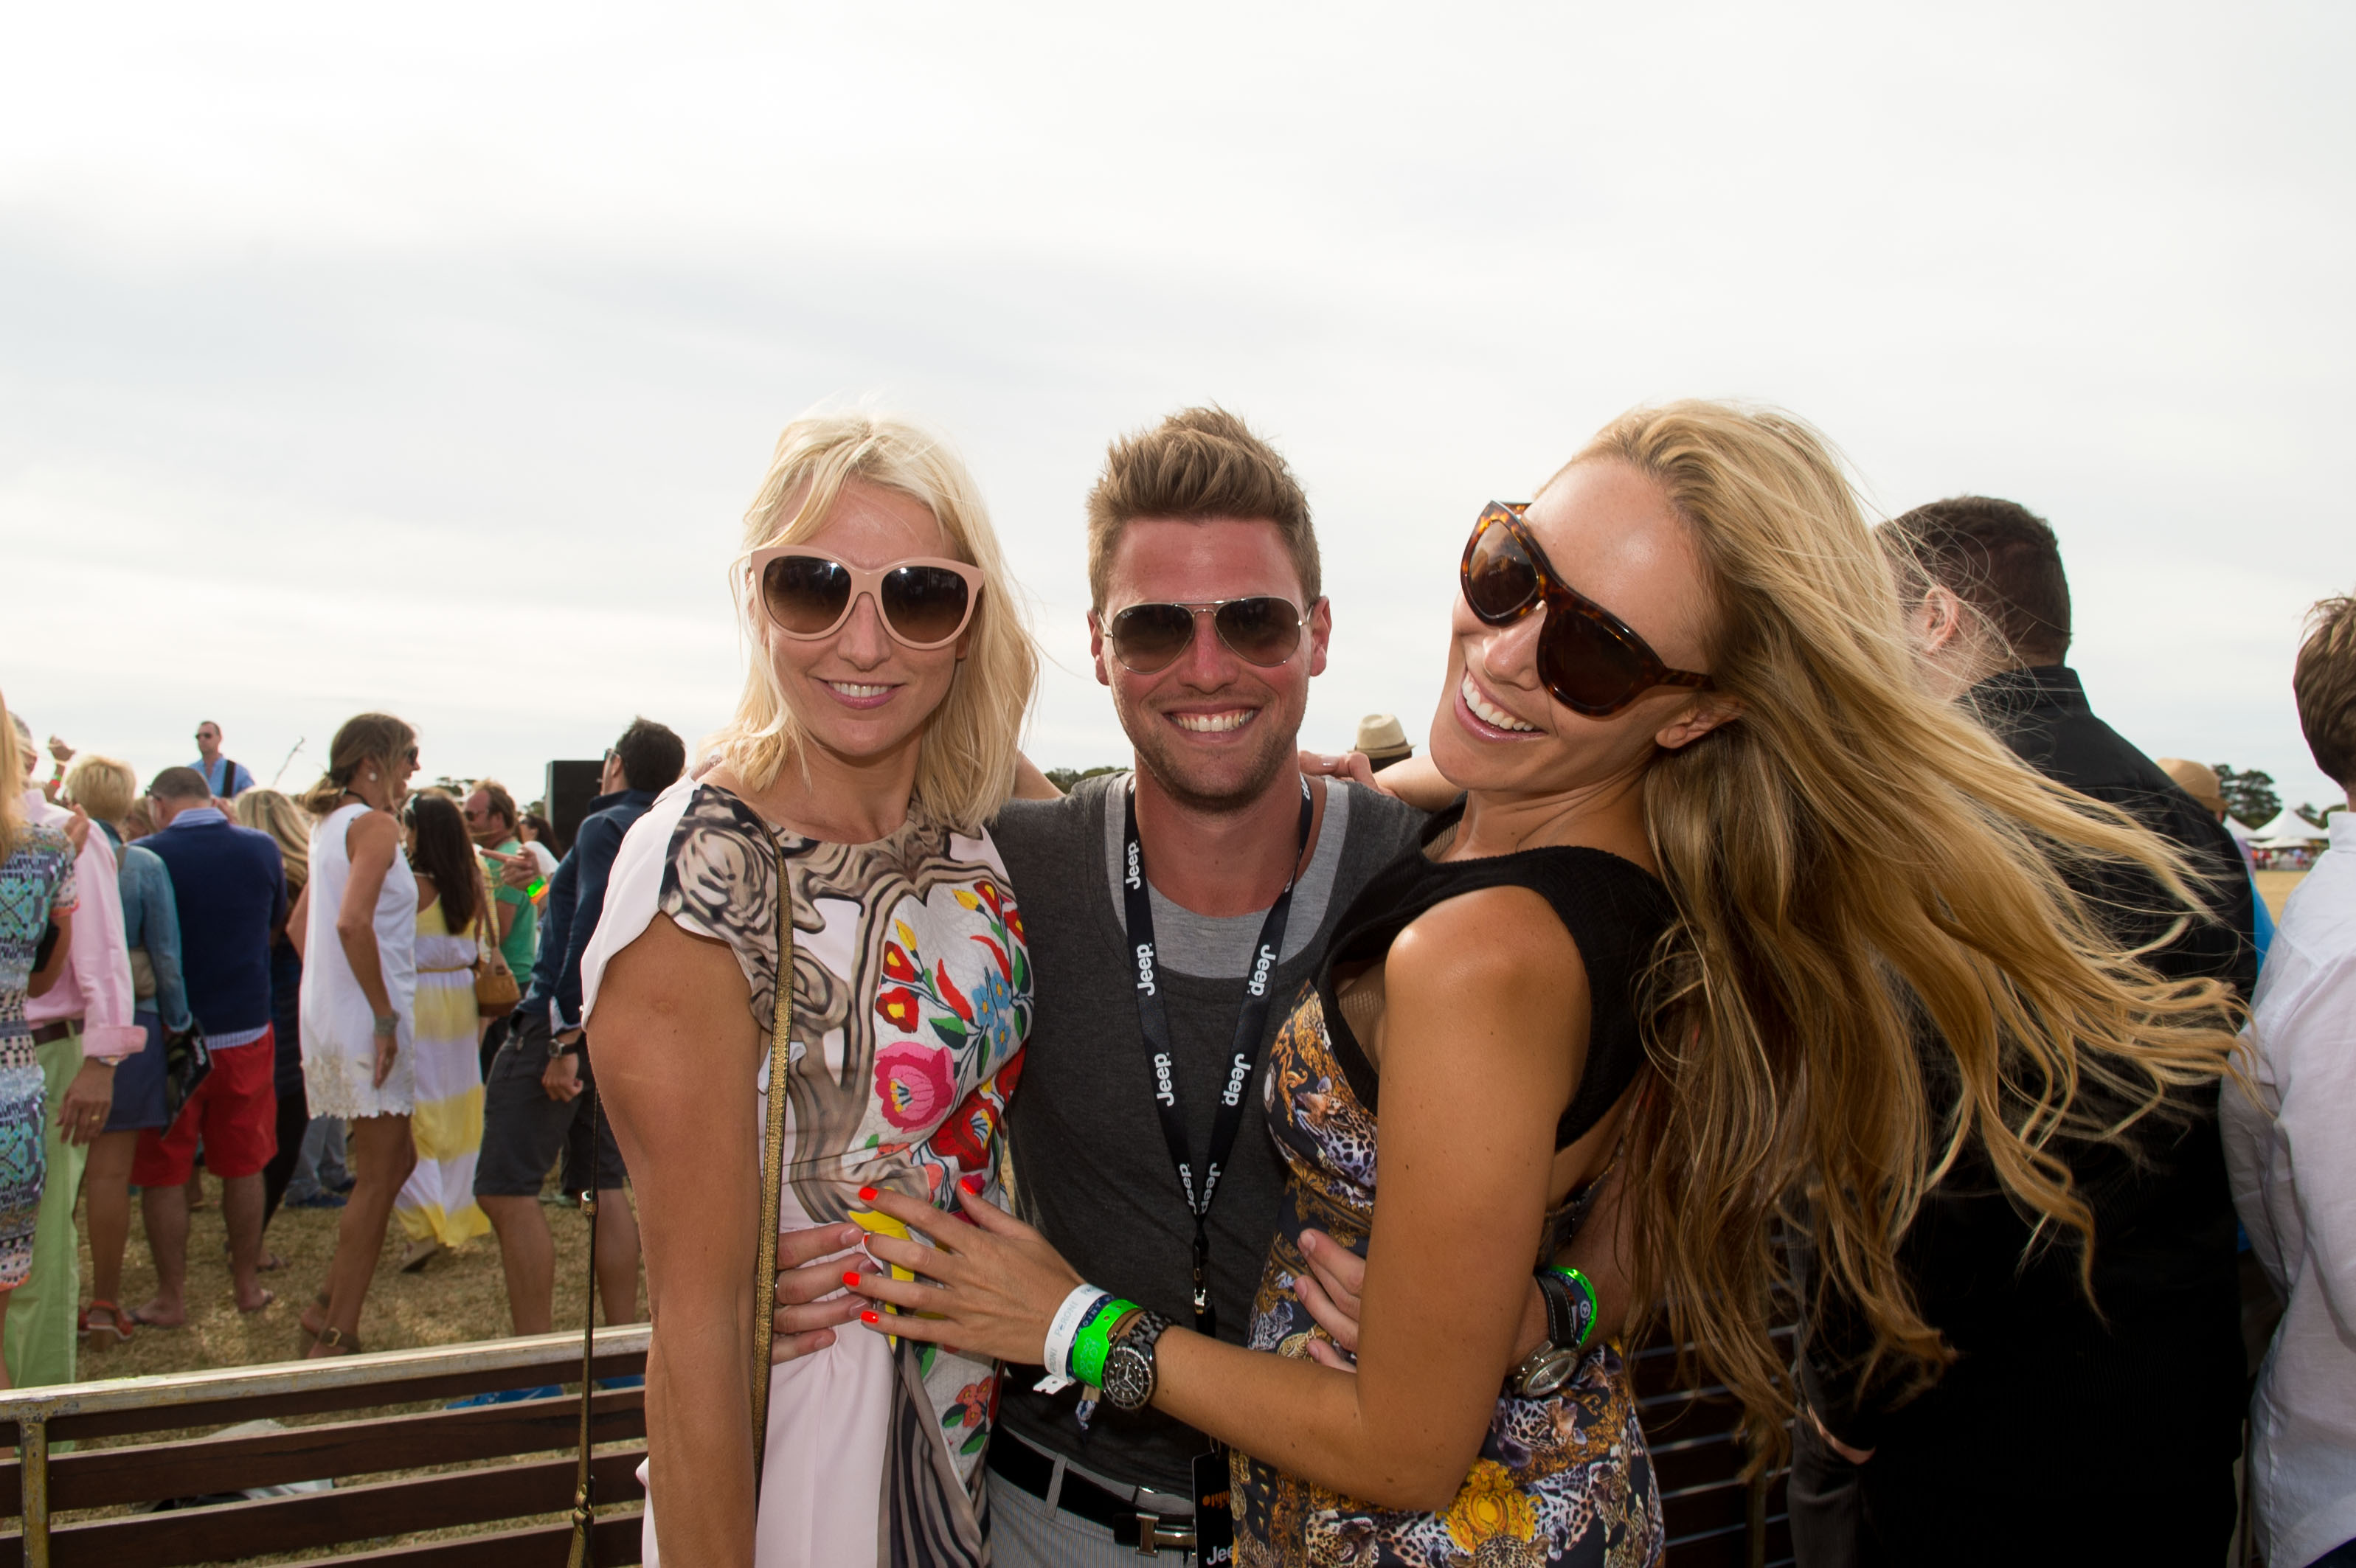 2014 Jeep Portsea Polo - How Not To Embarrass Yourself - What To Wear